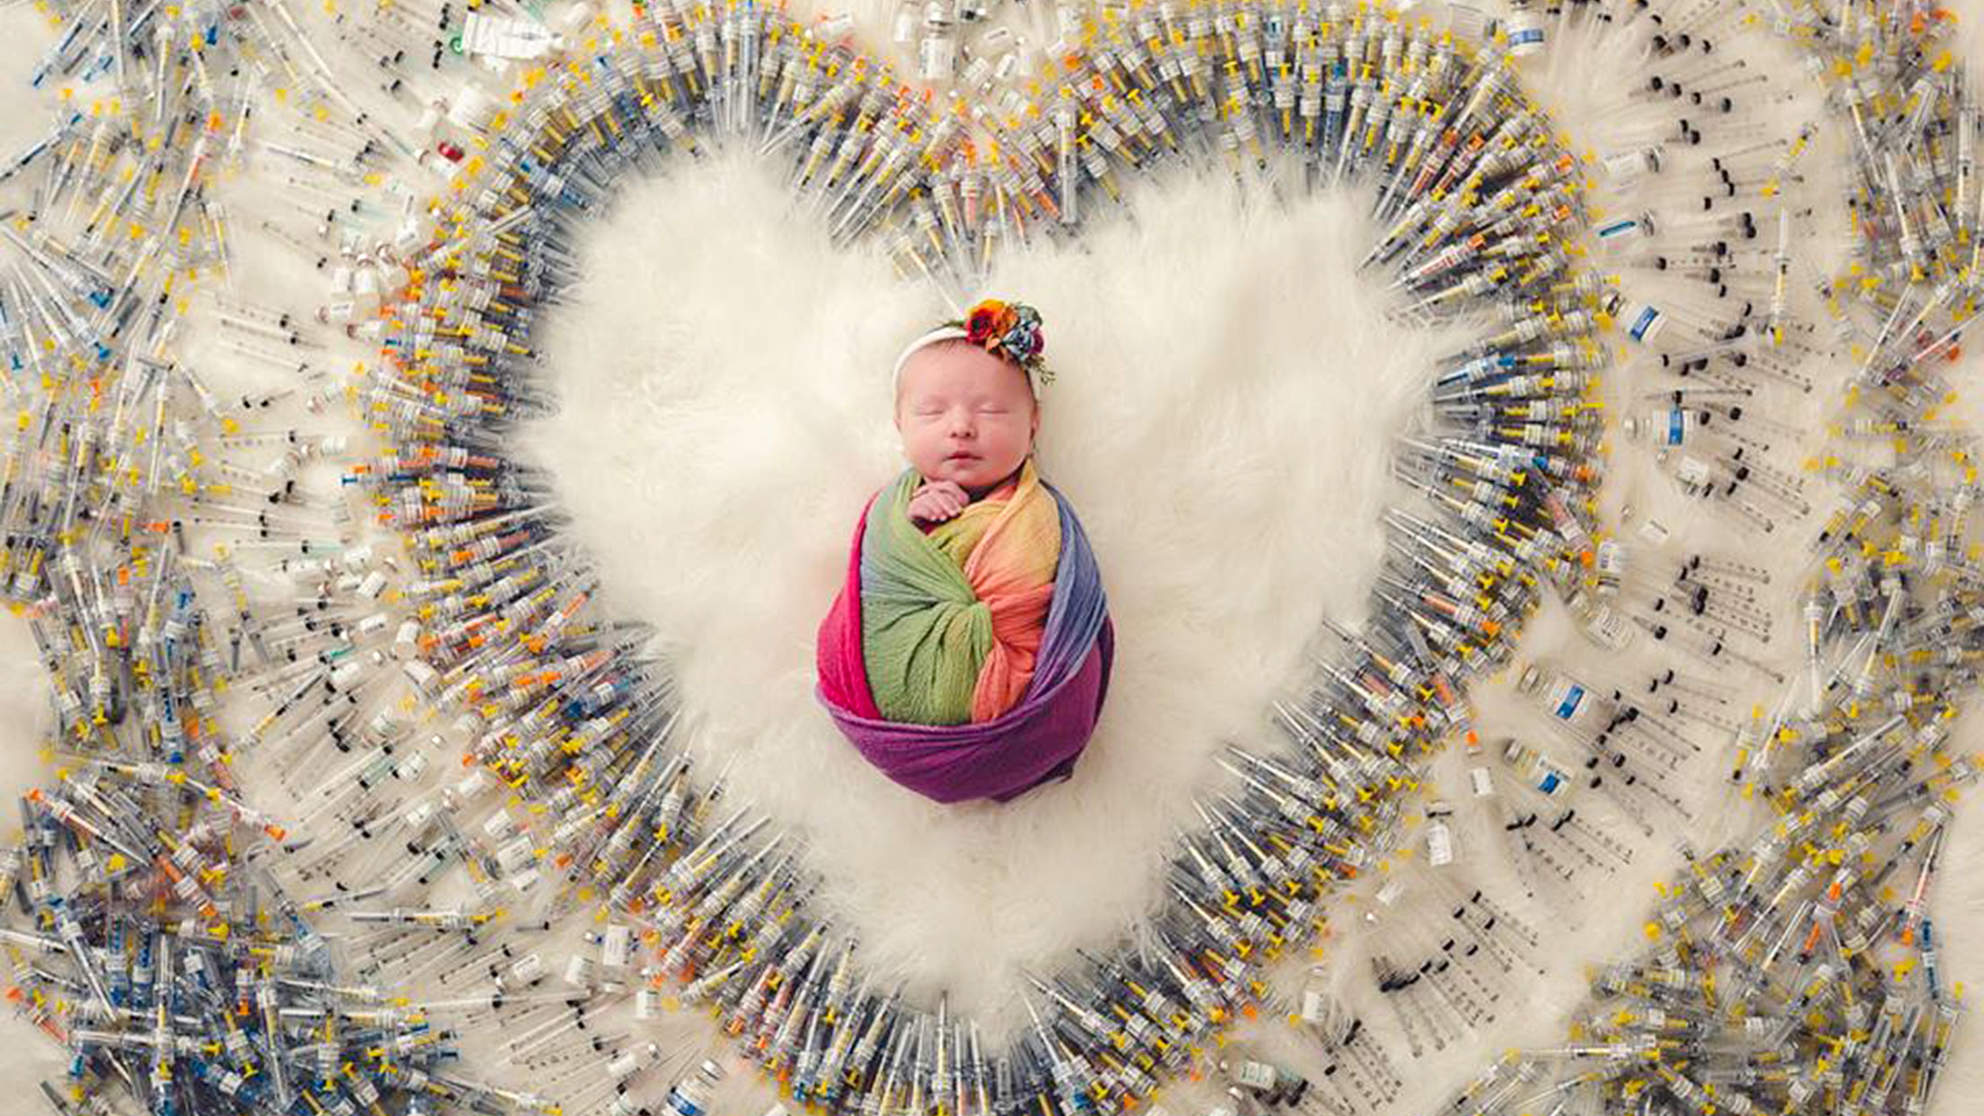 The True Story Behind the Viral Photo of Baby Girl Surrounded by 1,161 IVF Needles